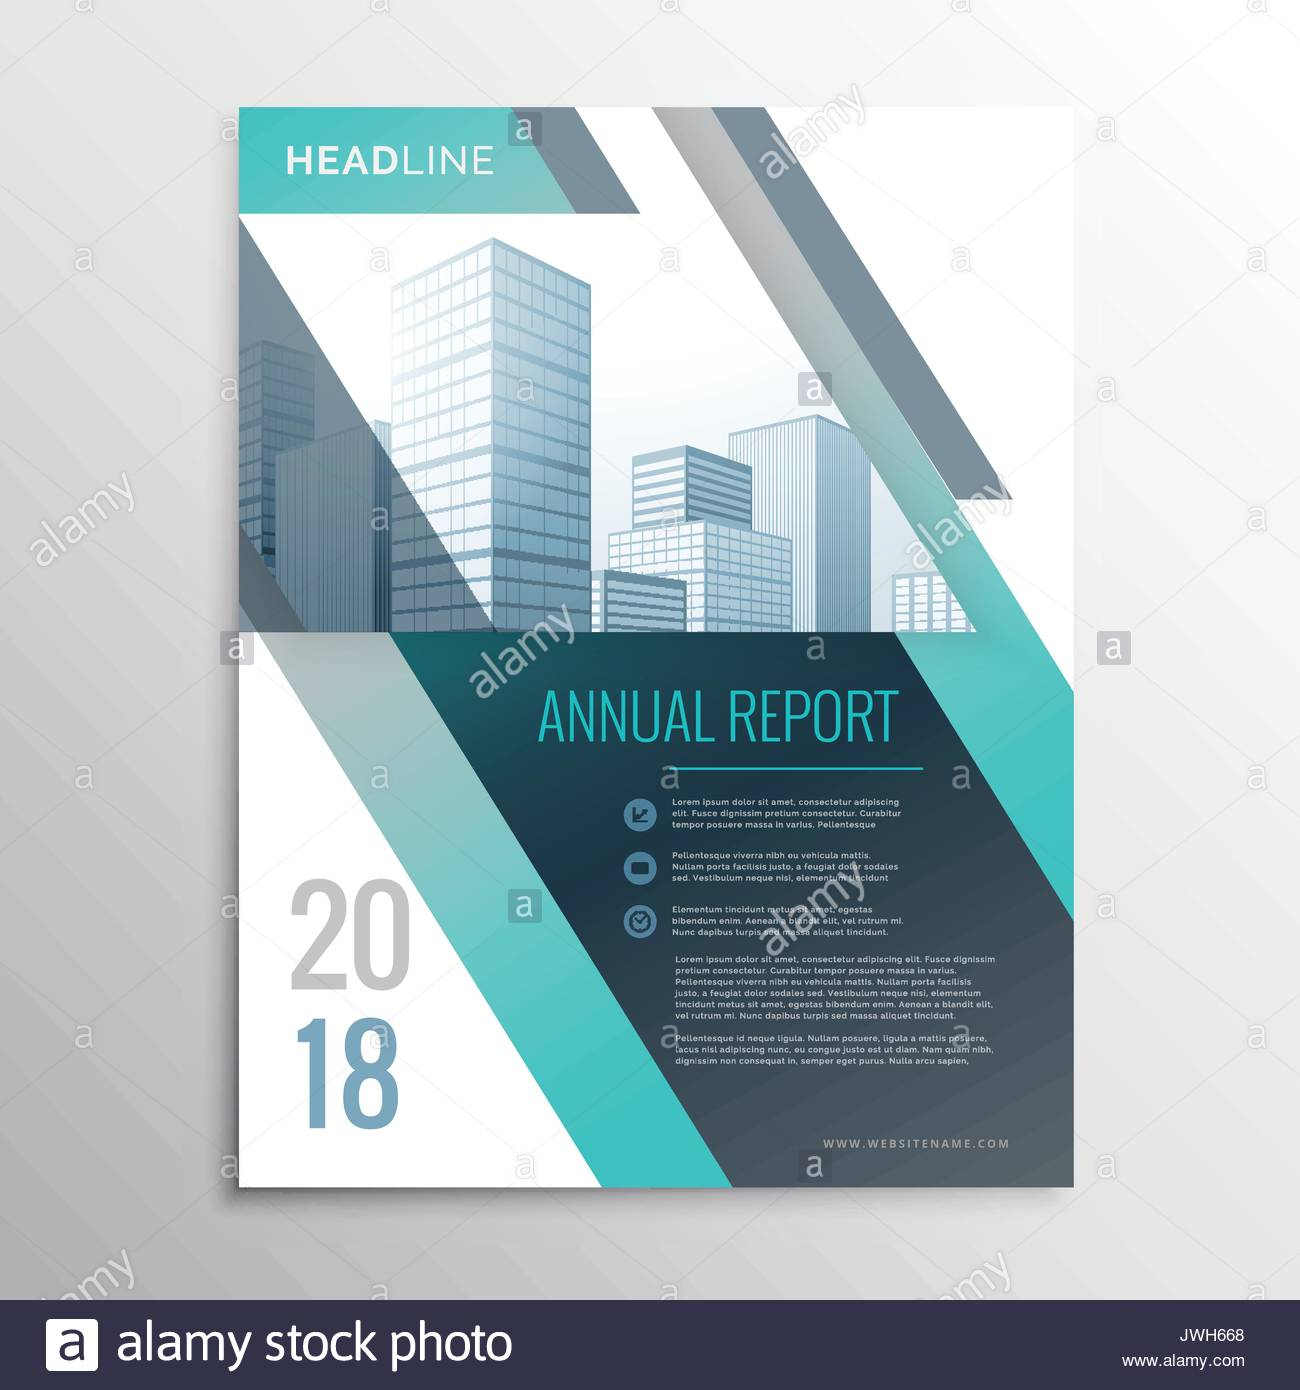 modern annual report business brochure design template cover page in